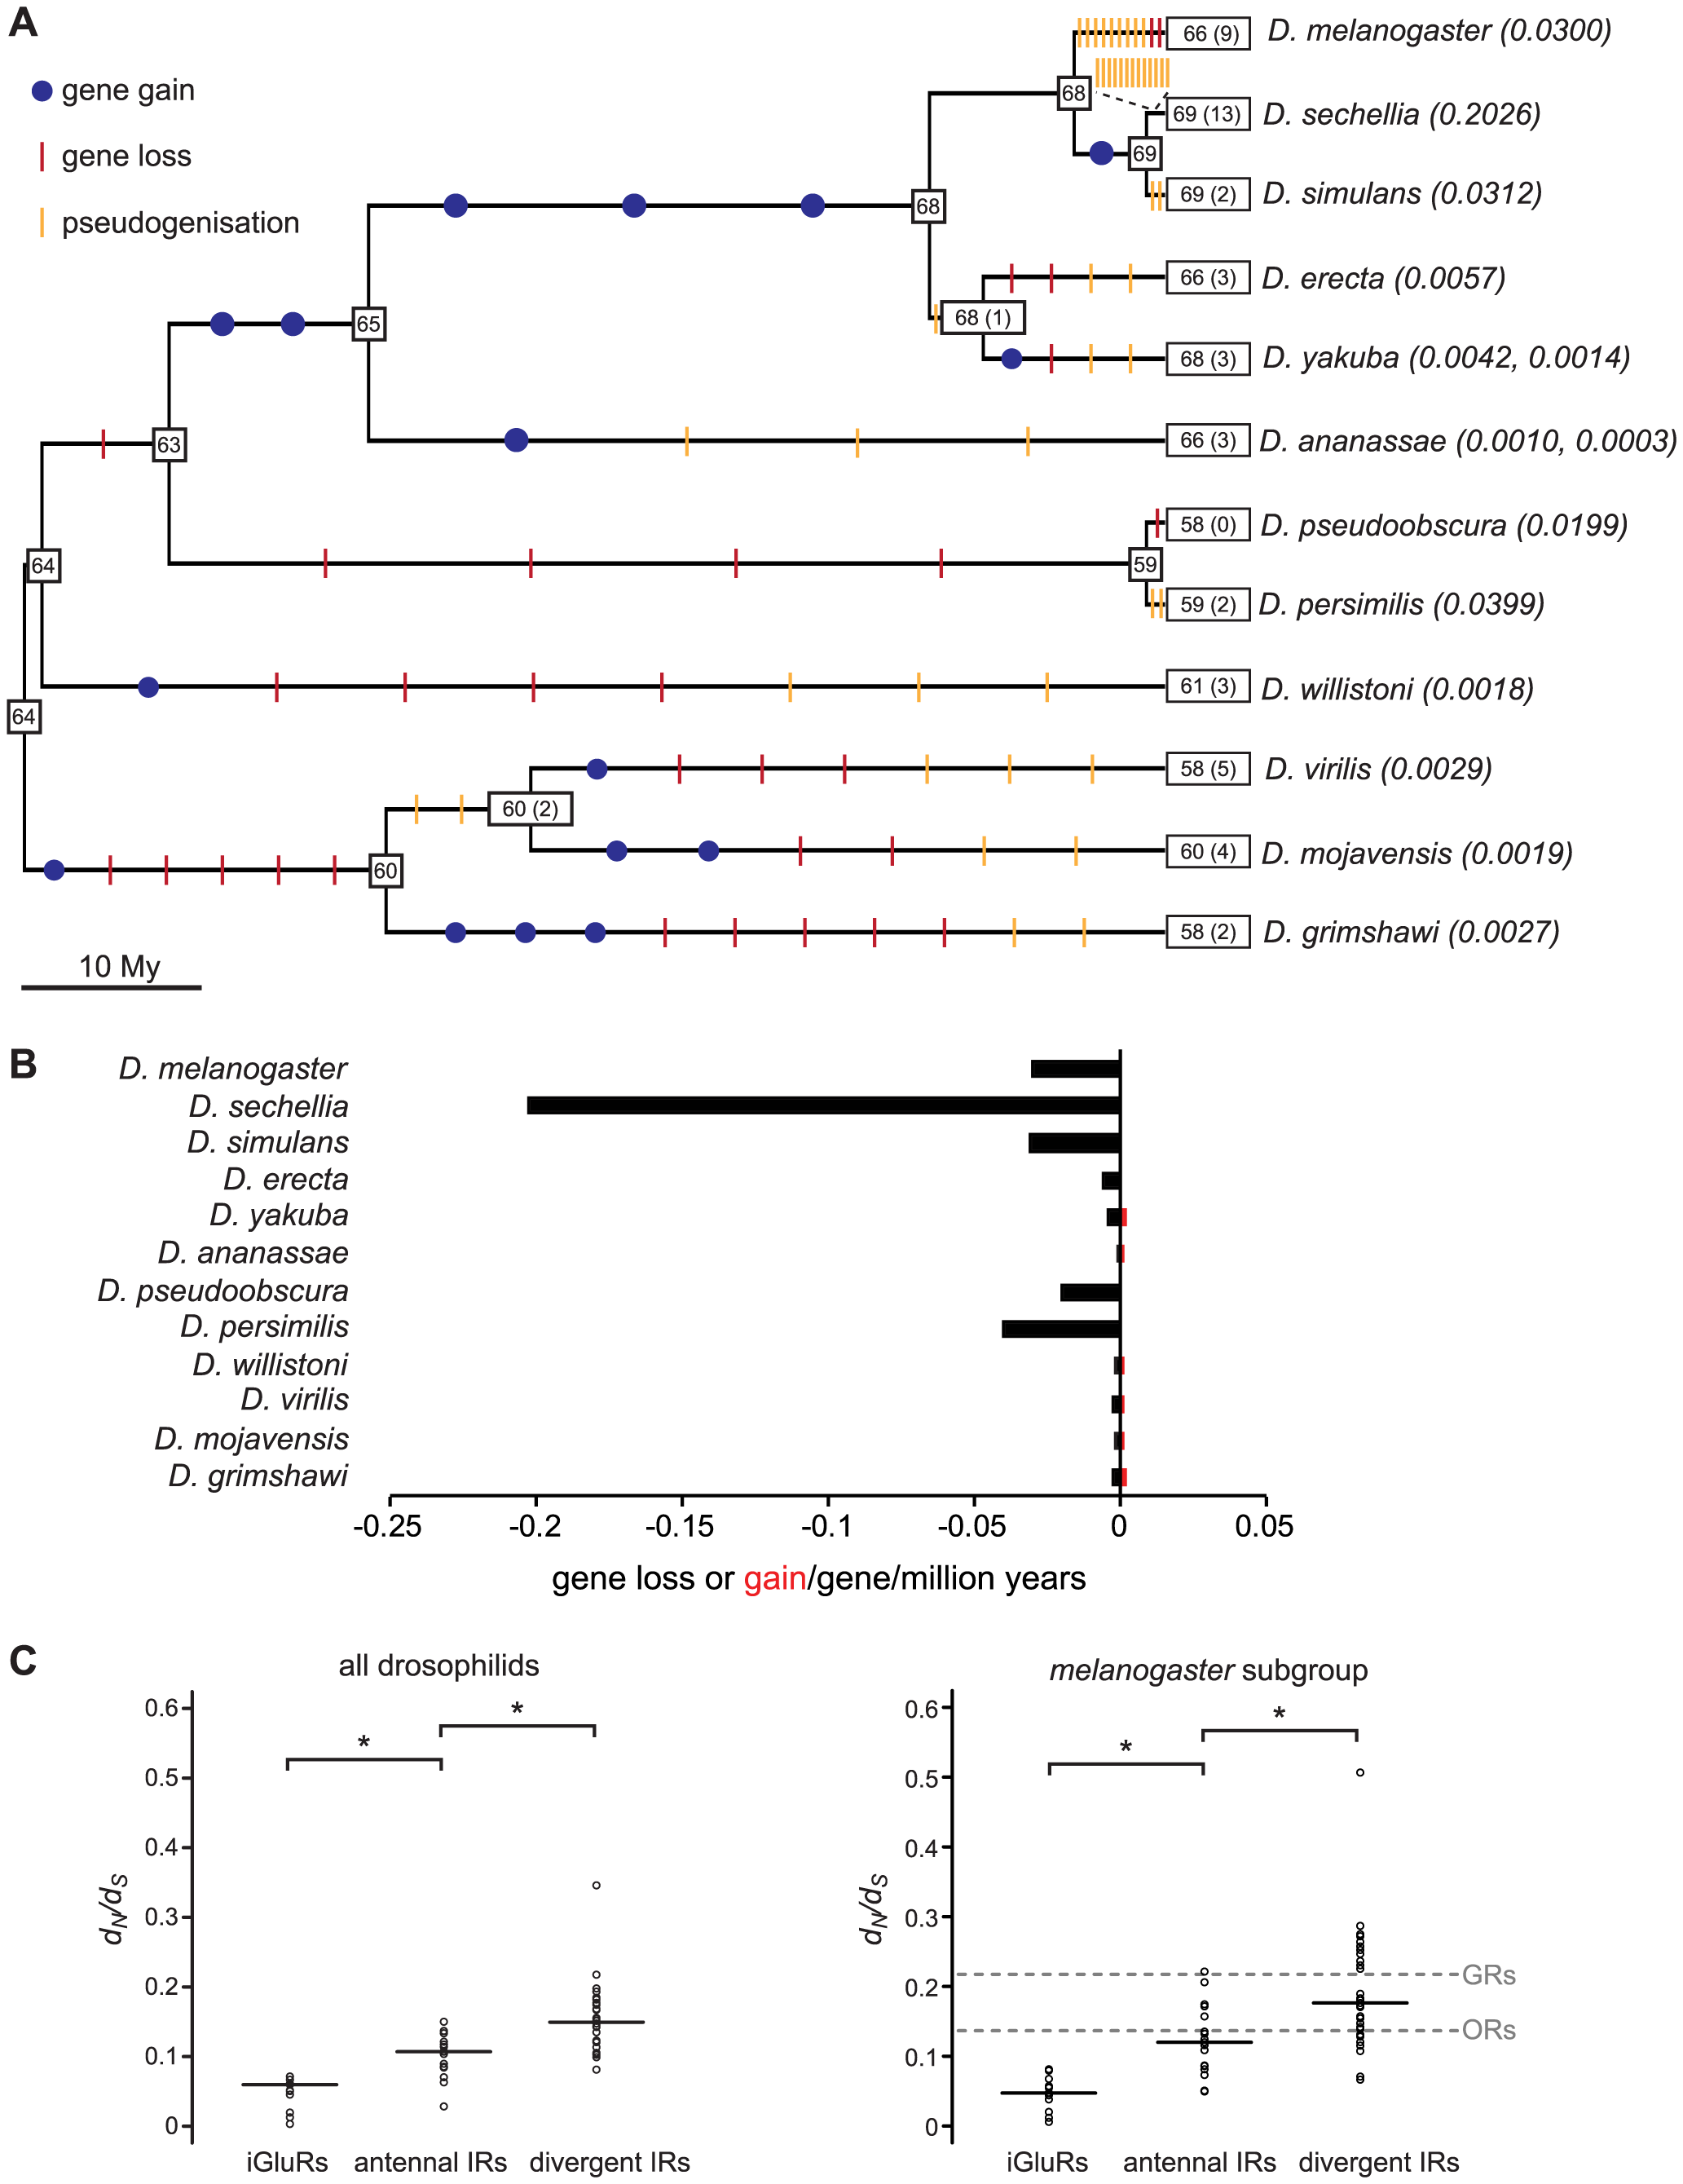 Gene loss and gain and selective pressures in drosophilid IR repertoires.